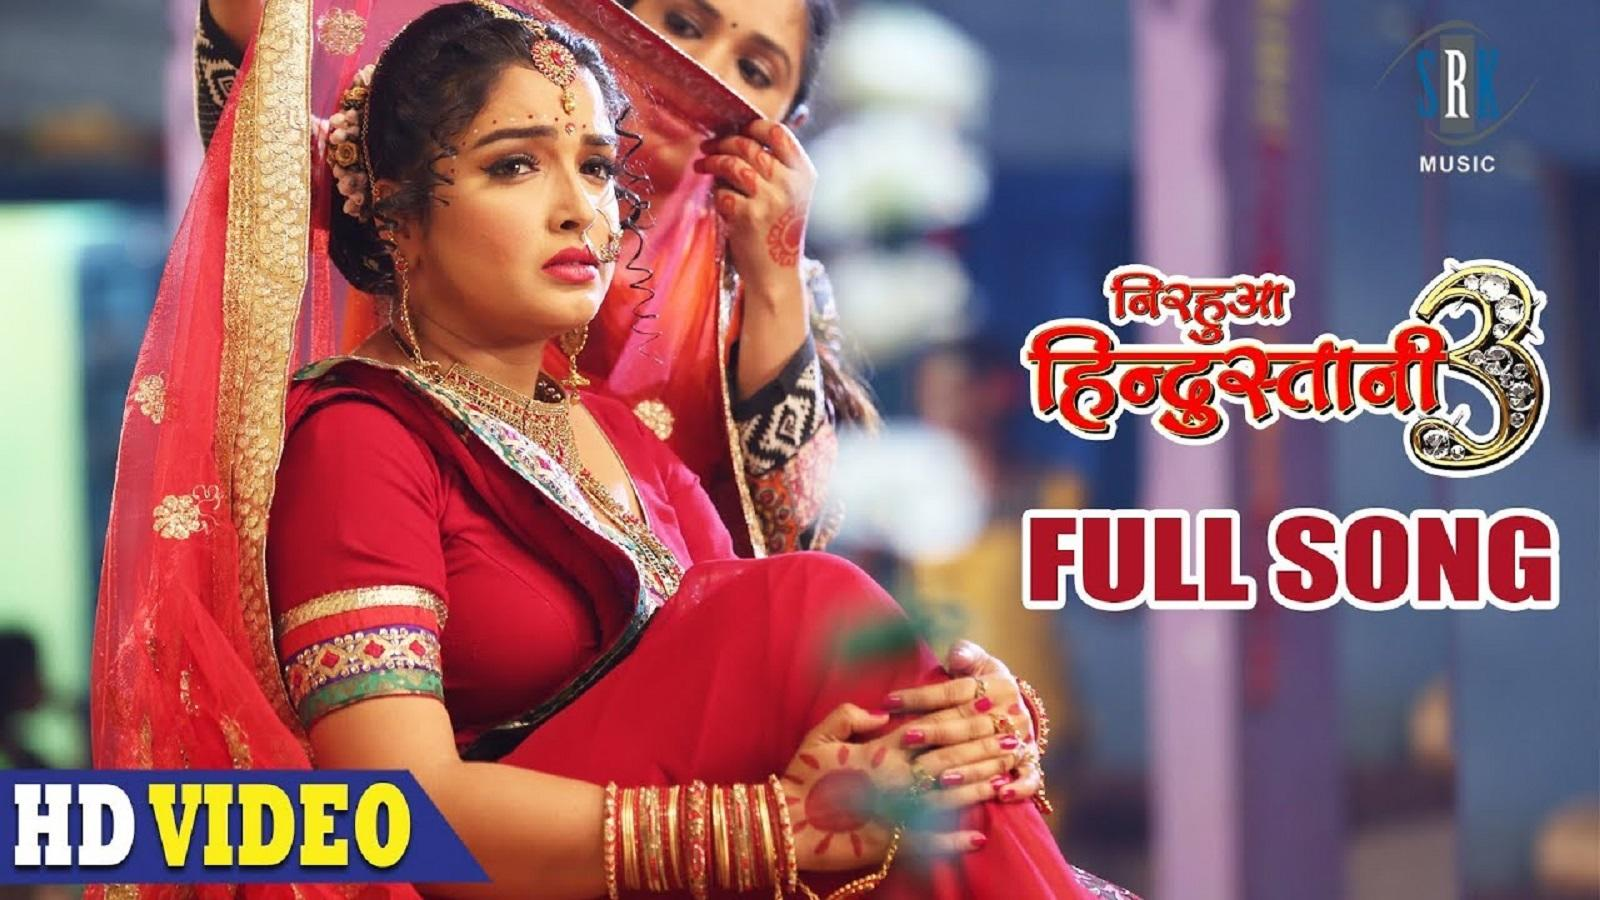 Amrapali Dubey Bhojpuri Video Song Sajanwa Kaise Tejab